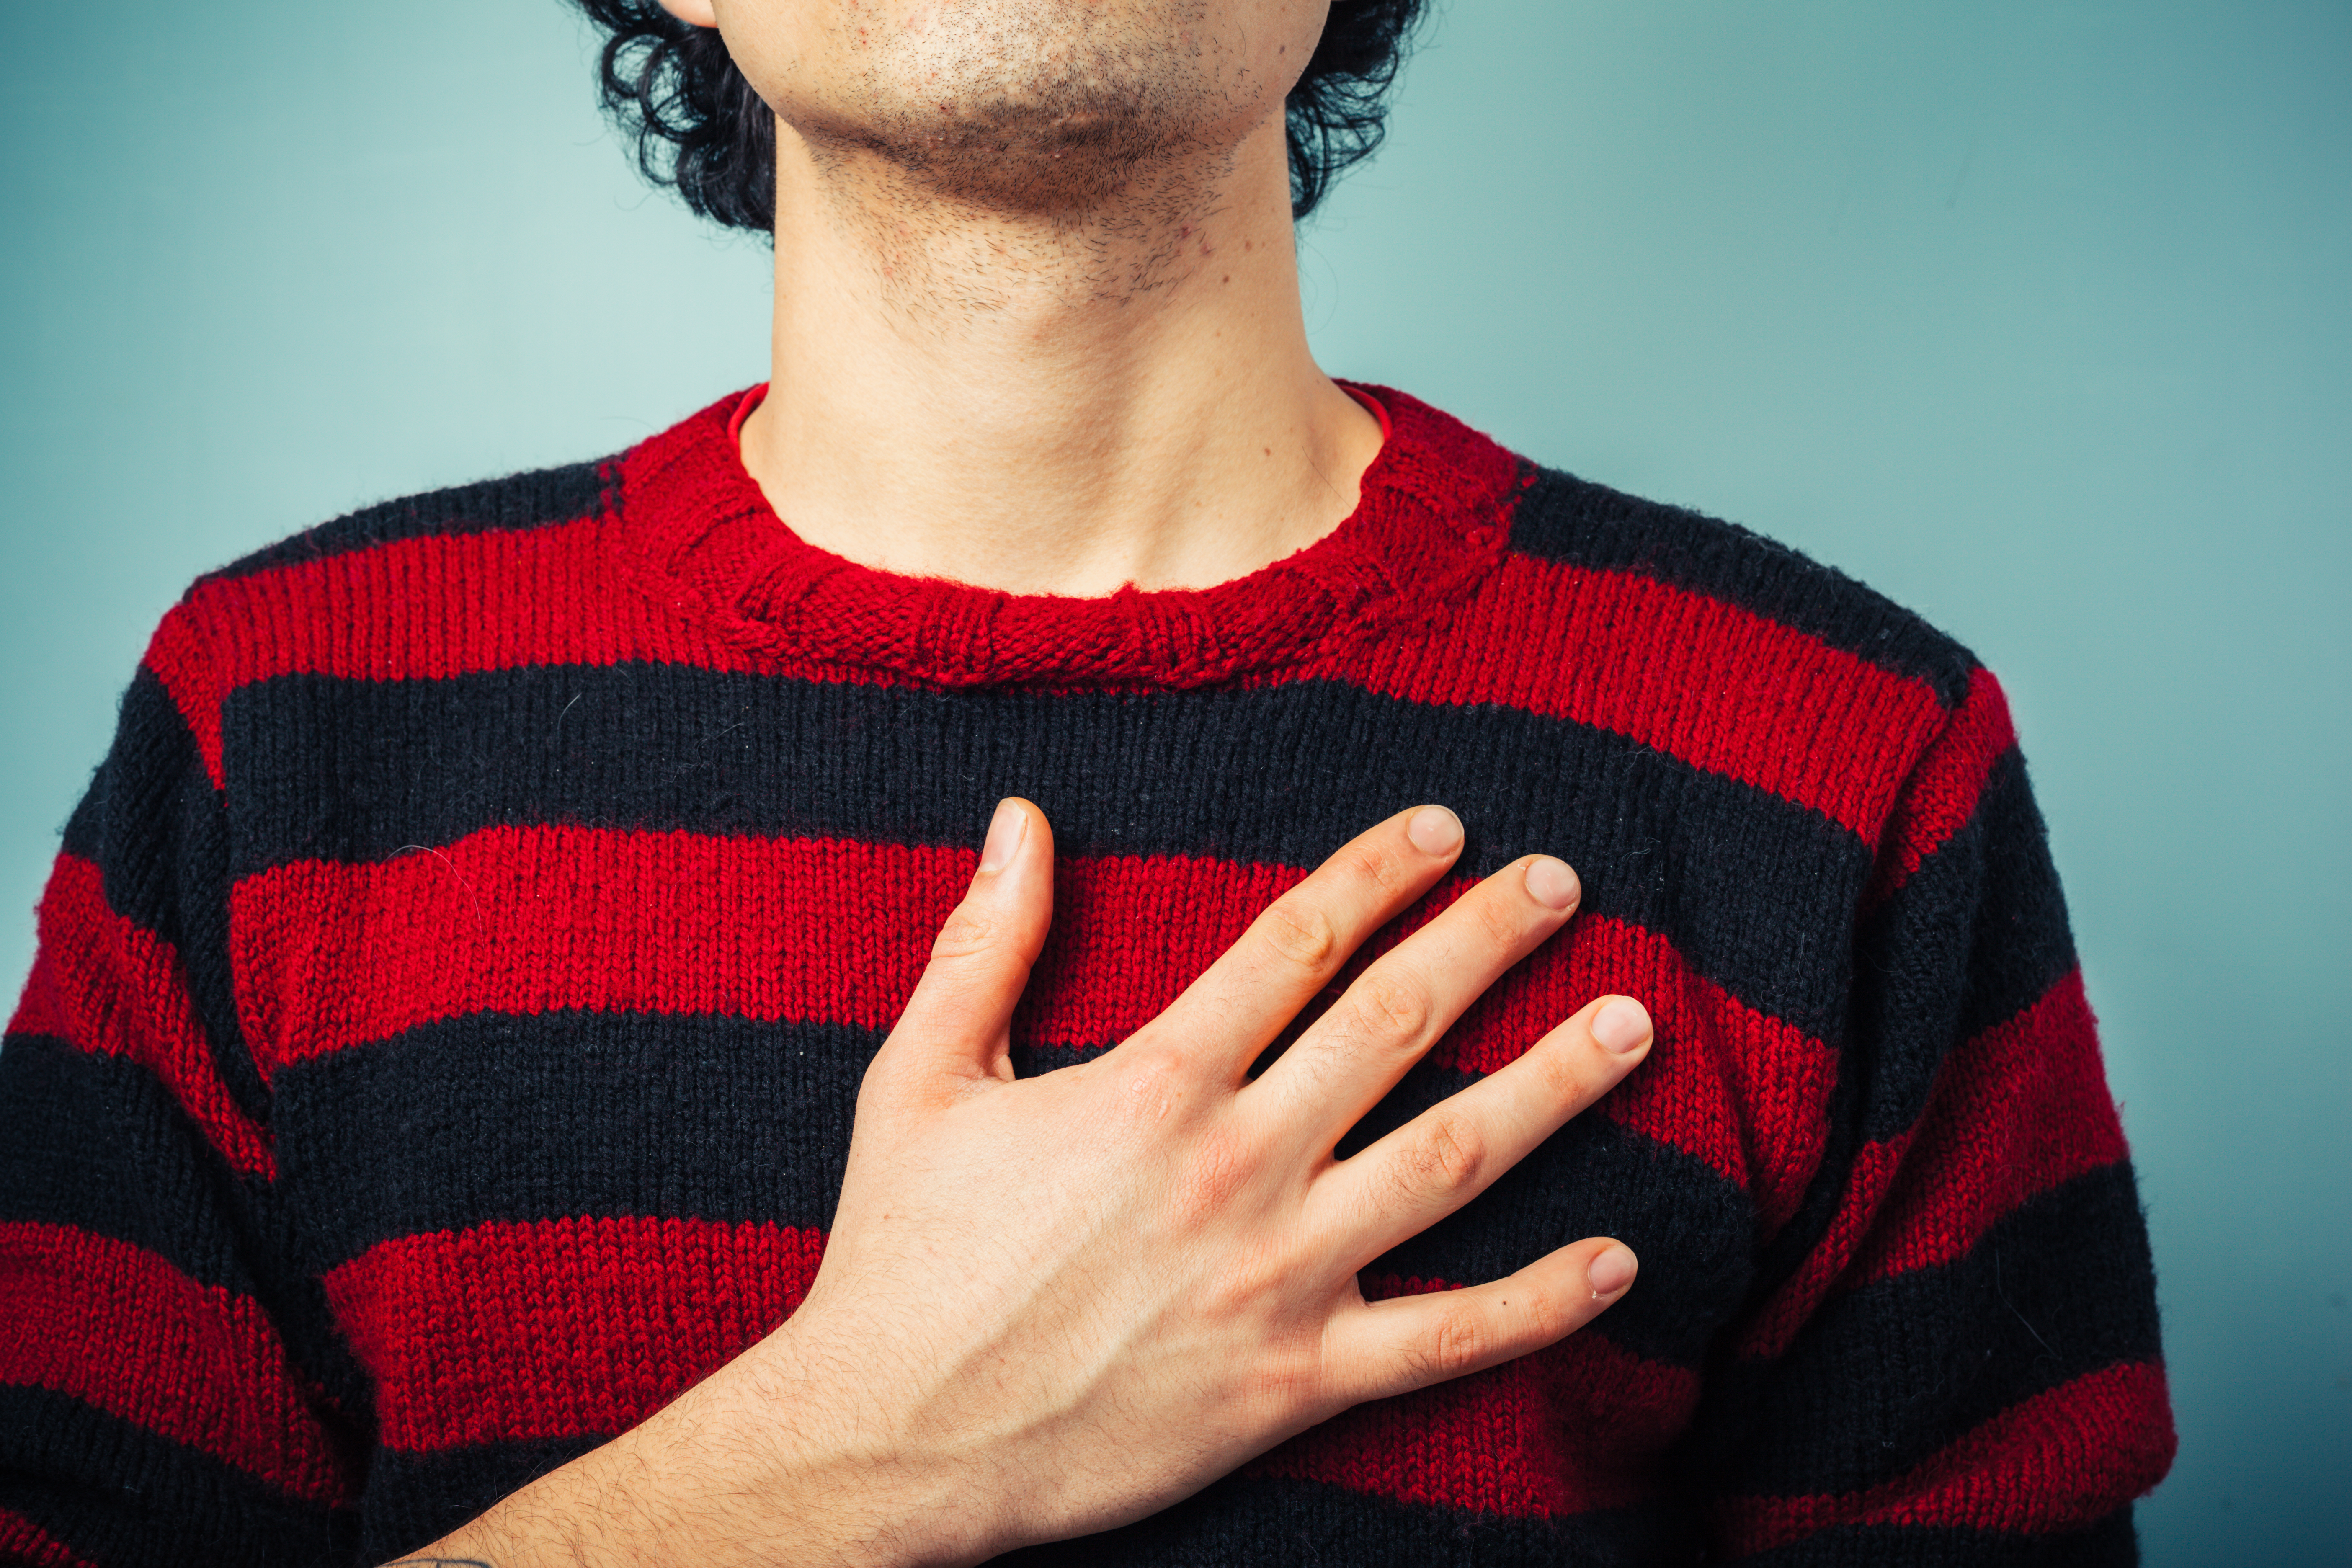 A man places his right hand over his heart to recite the pledge. SHUTTERSTOCK/Lolostock